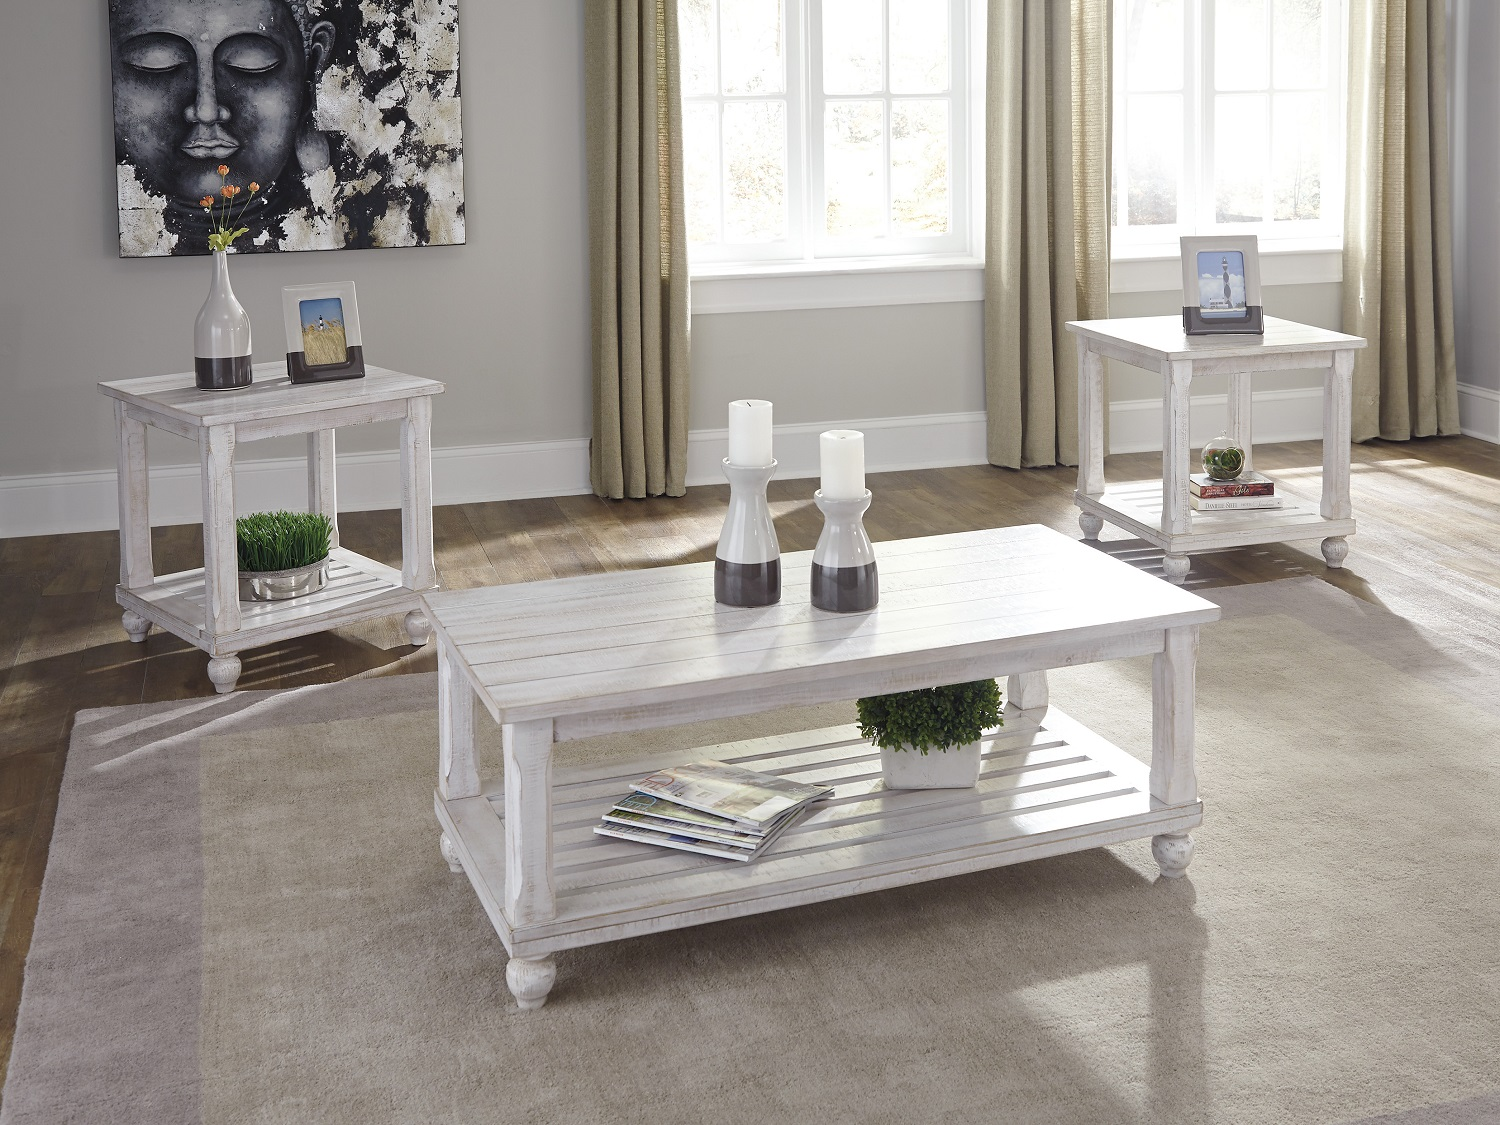 Cloudhurst 3PC Table Set, T488-13, Coffee Table by Midha Furniture to Brampton, Mississauga, Etobicoke, Toronto, Scraborough, Caledon, Oakville, Markham, Ajax, Pickering, Oshawa, Richmondhill, Kitchener, Hamilton and GTA area